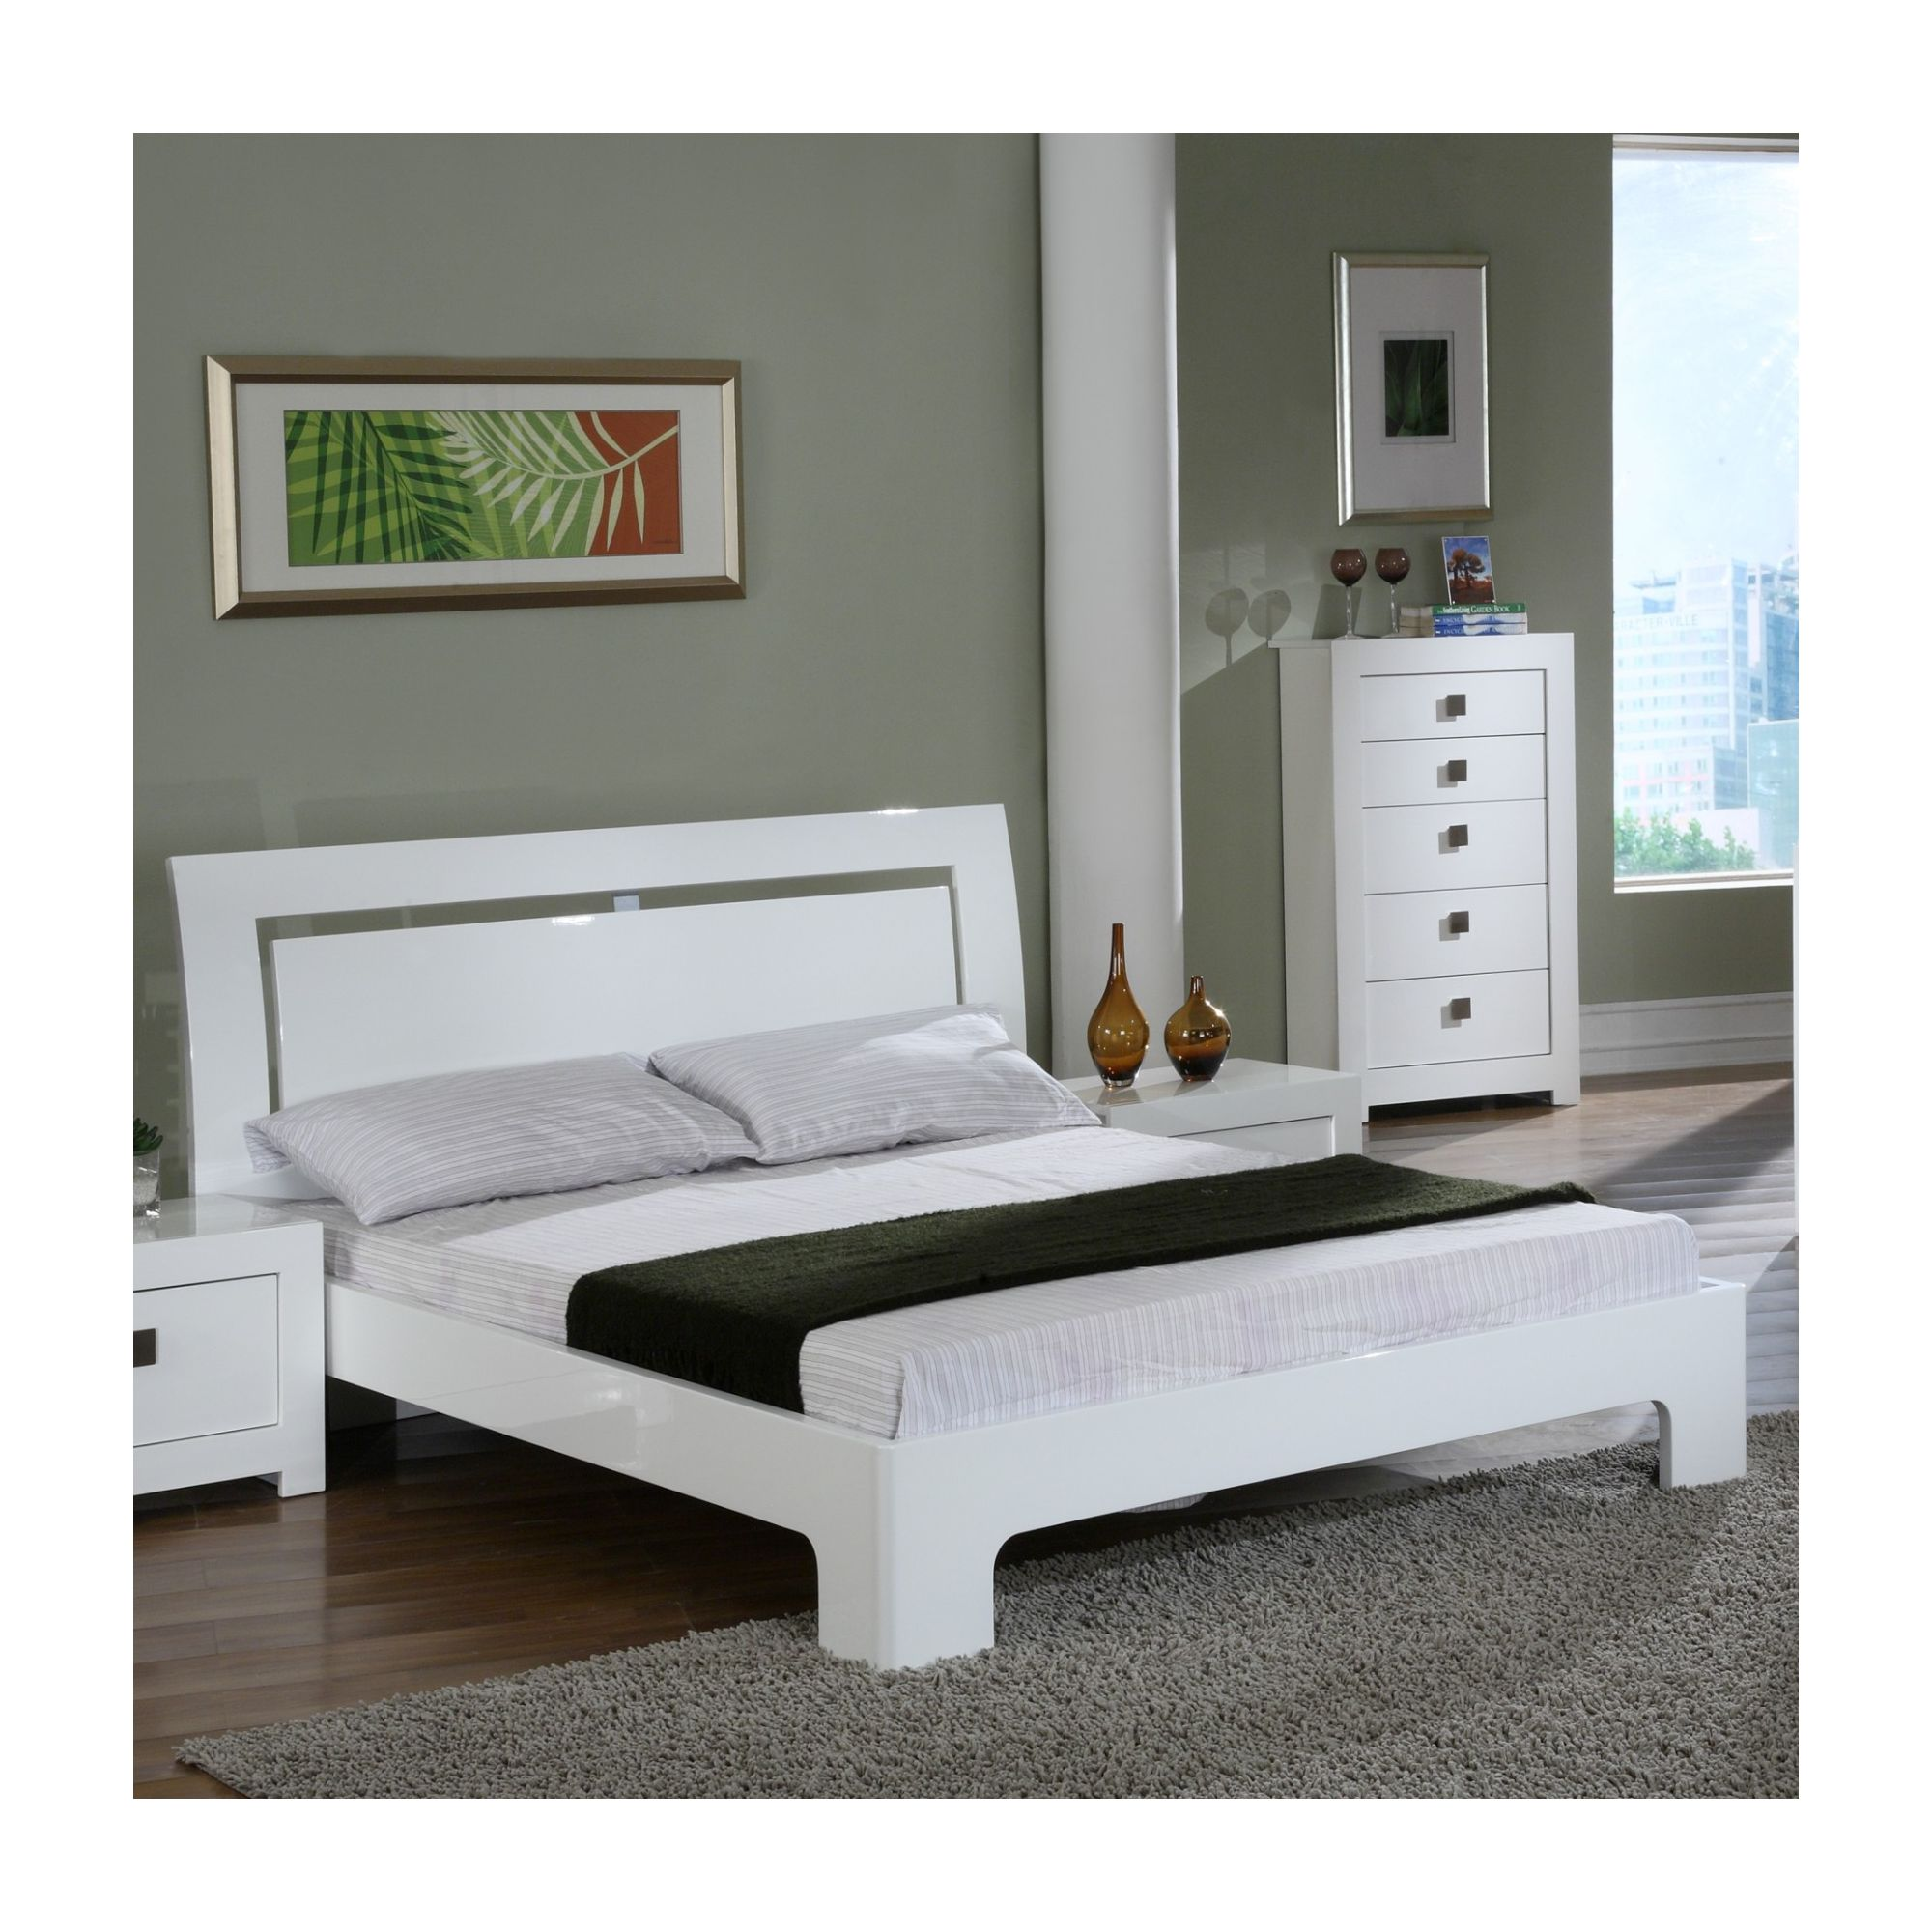 World Furniture Bari Bed Frame - Double at Tesco Direct